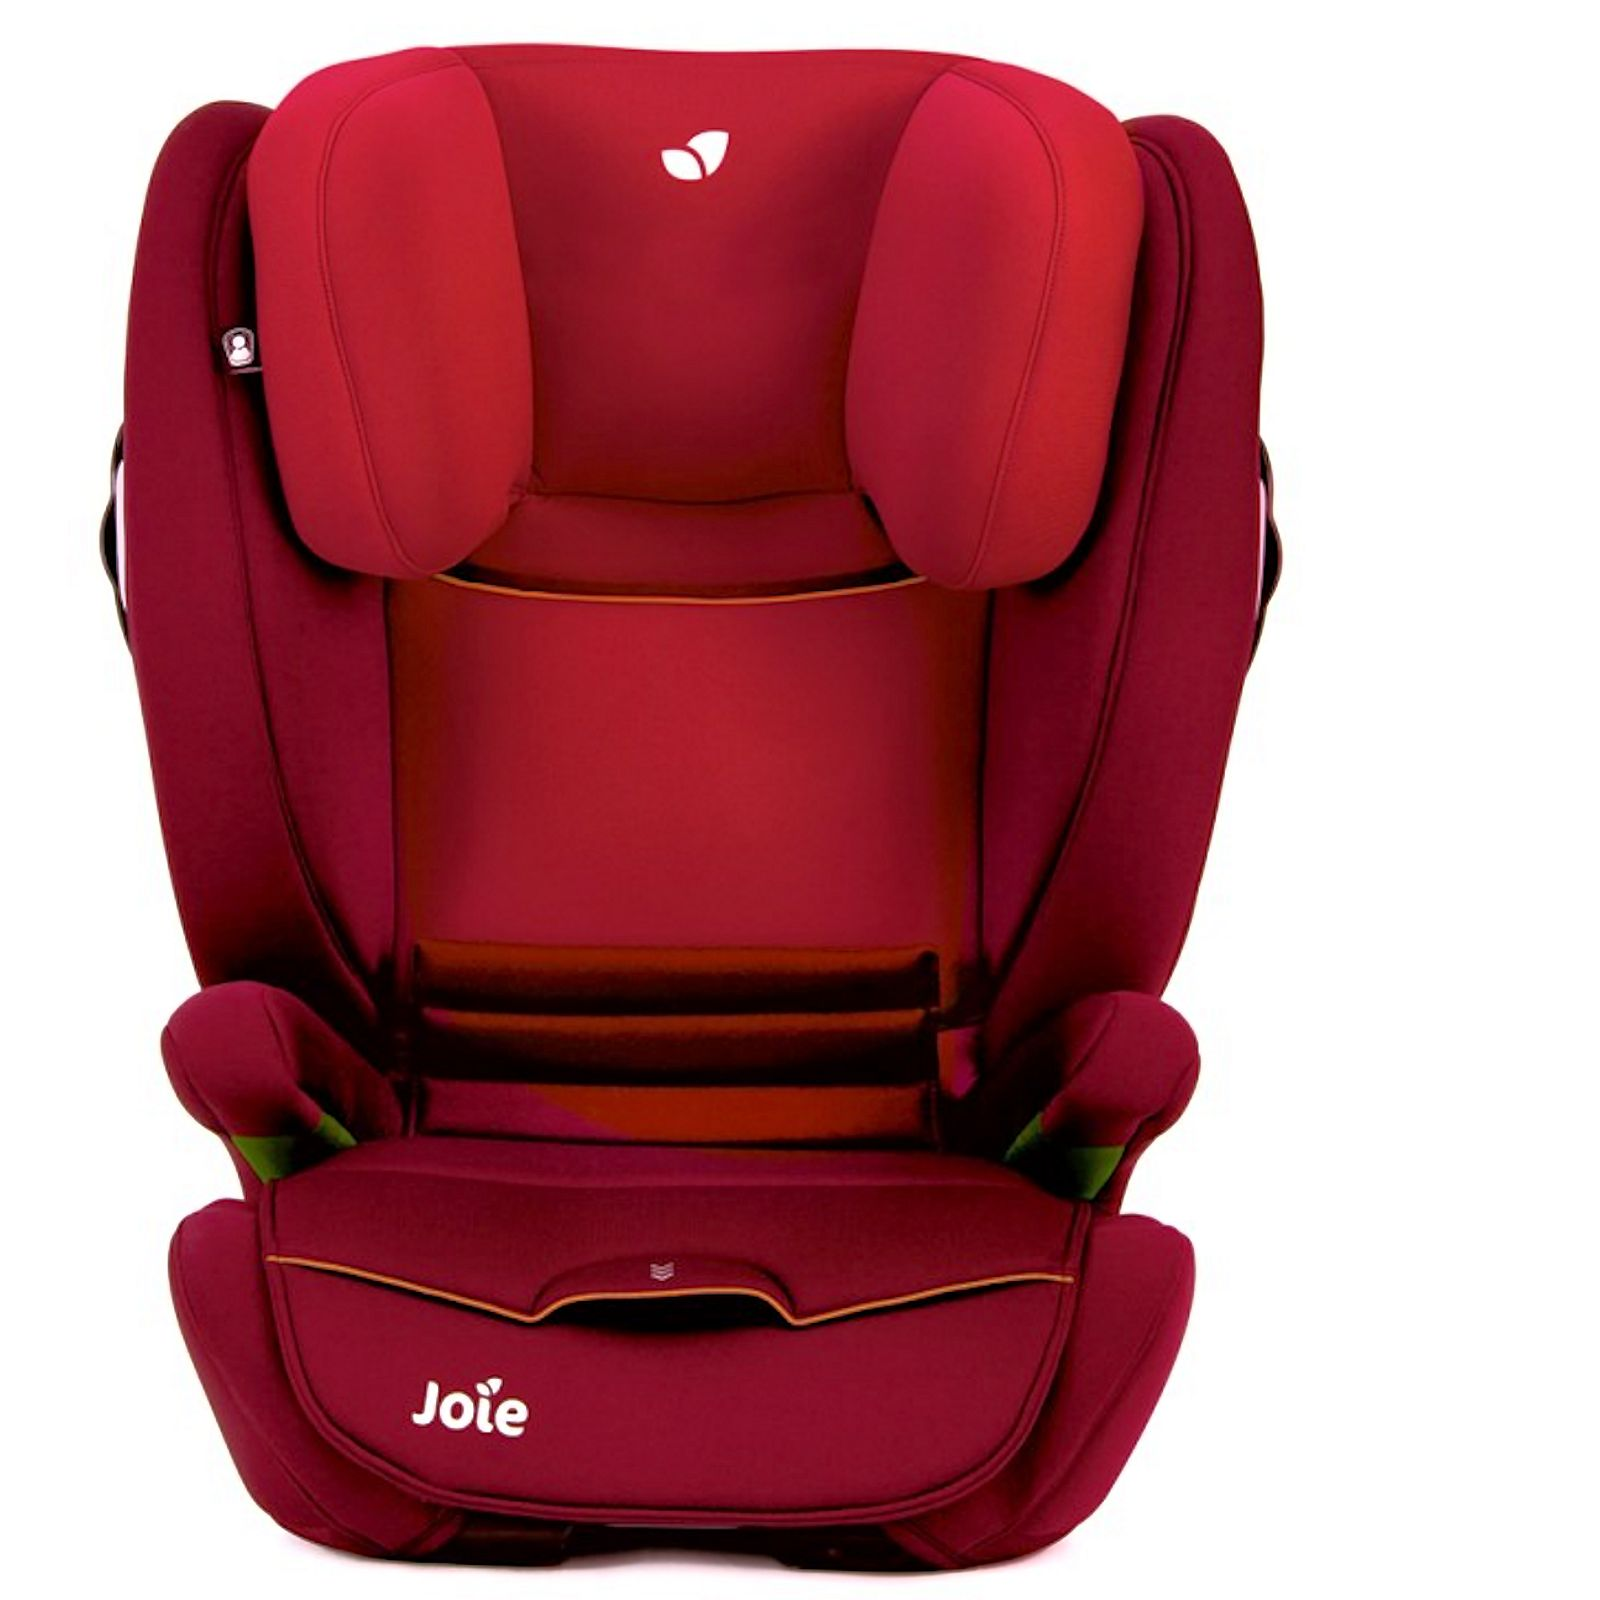 car seat laws booster seat infant car seat convertible car autos weblog. Black Bedroom Furniture Sets. Home Design Ideas